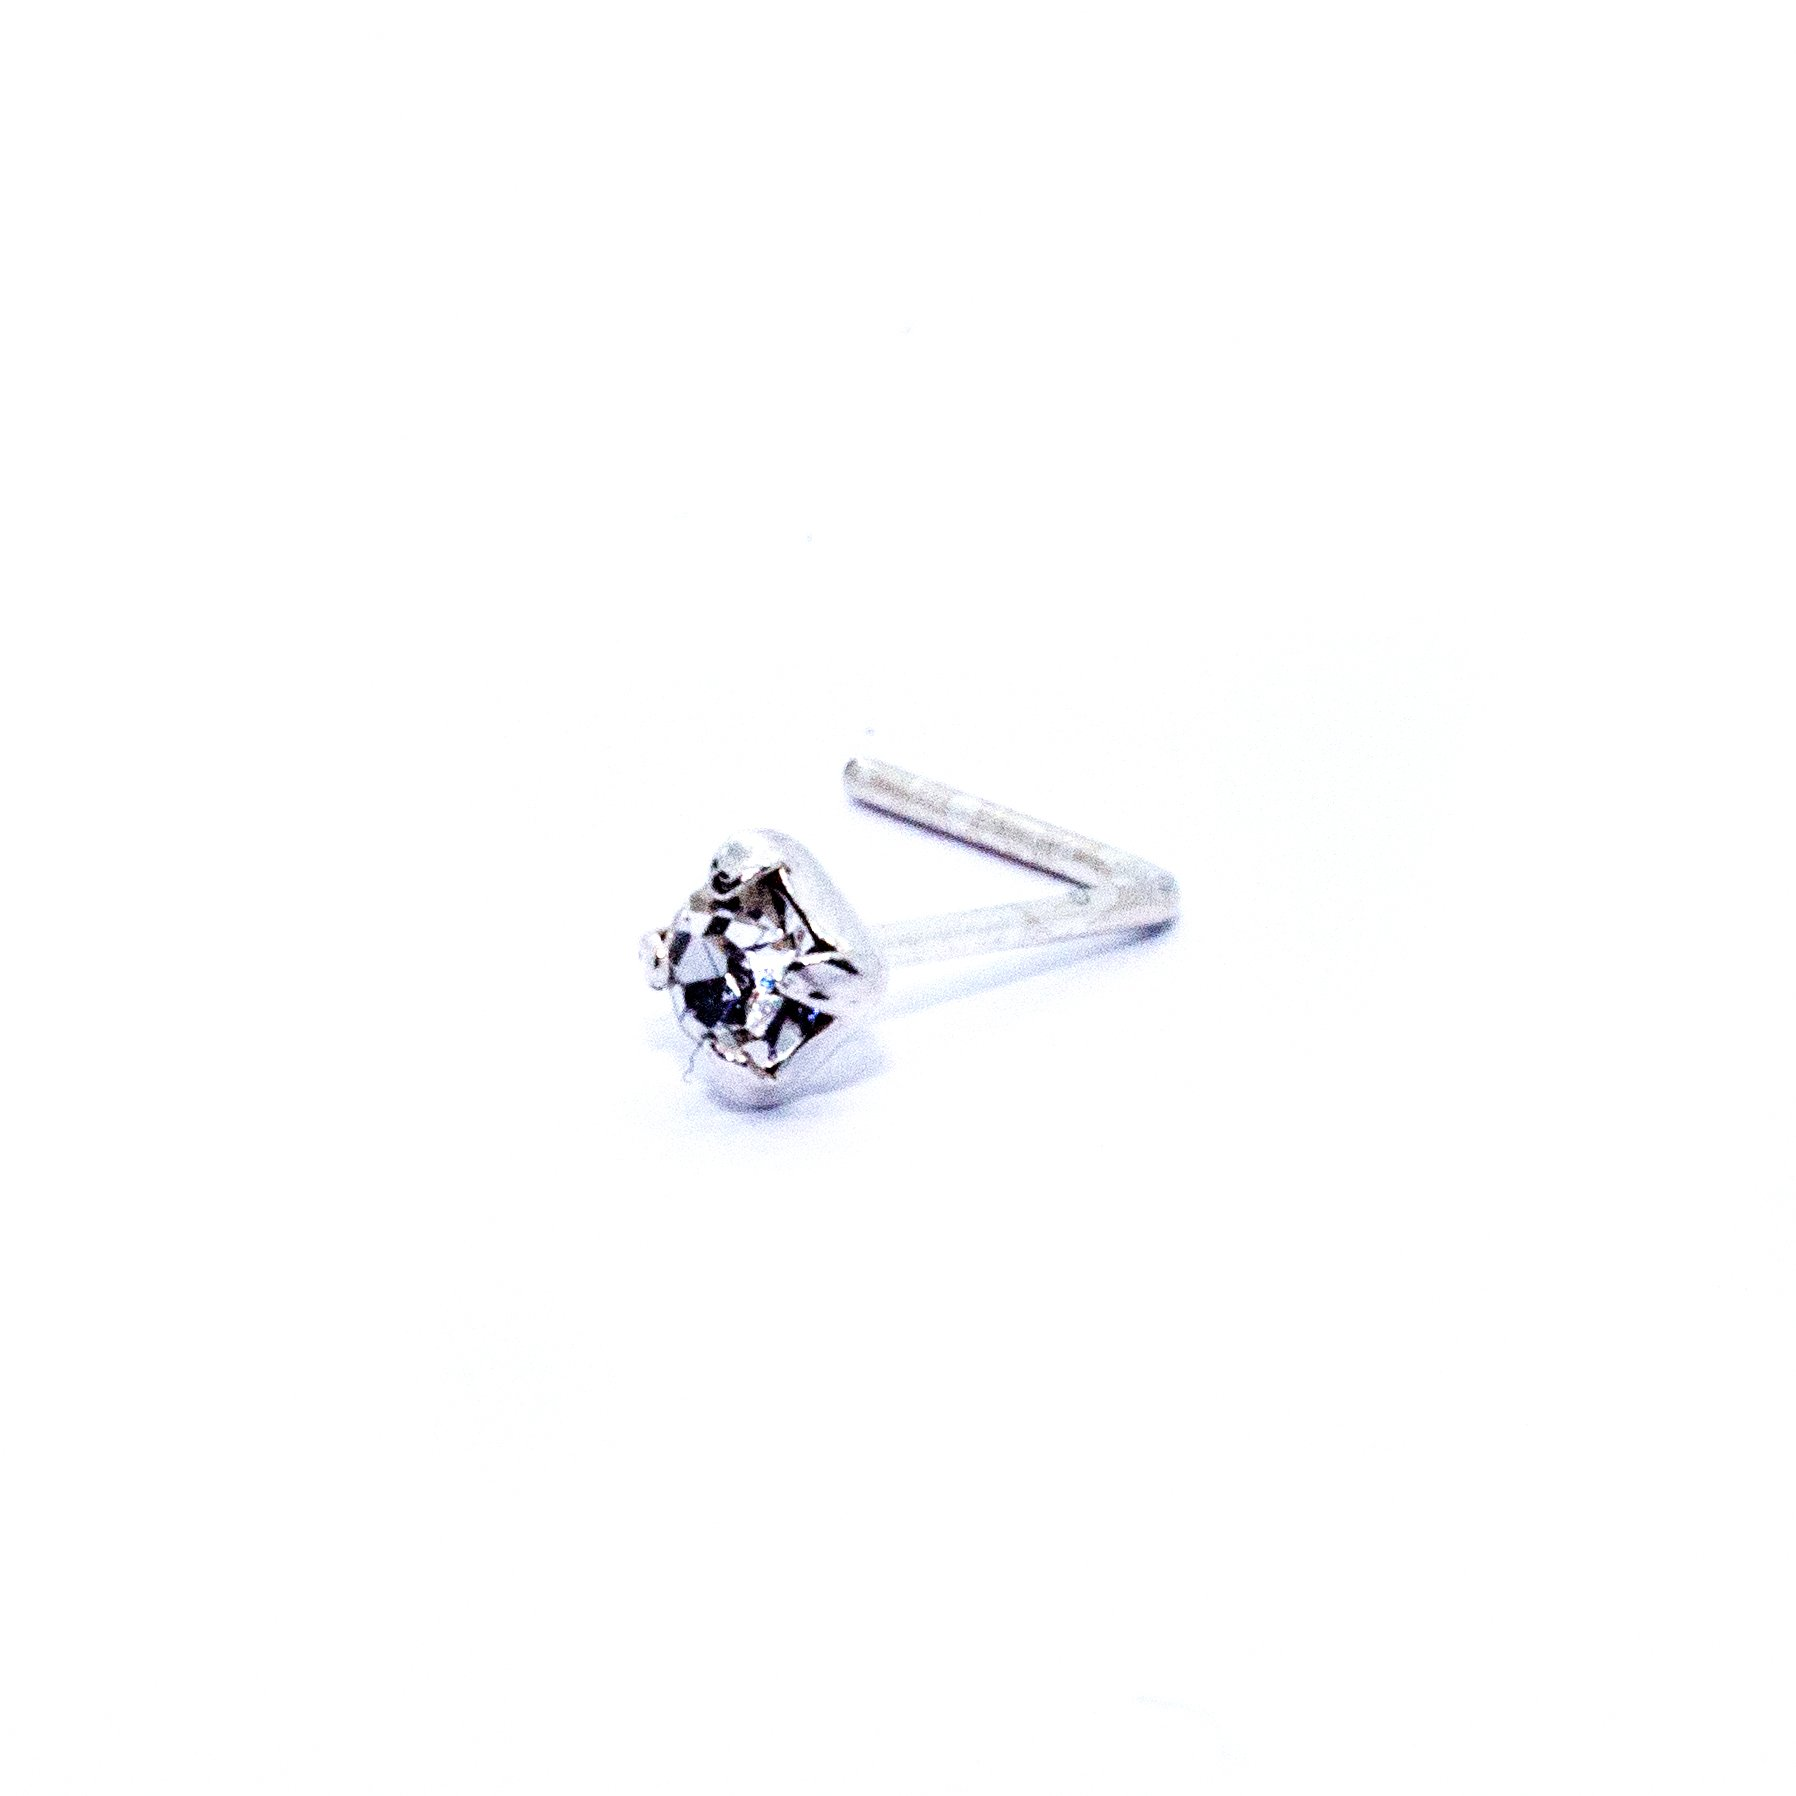 Small square crystal nose stud in silver